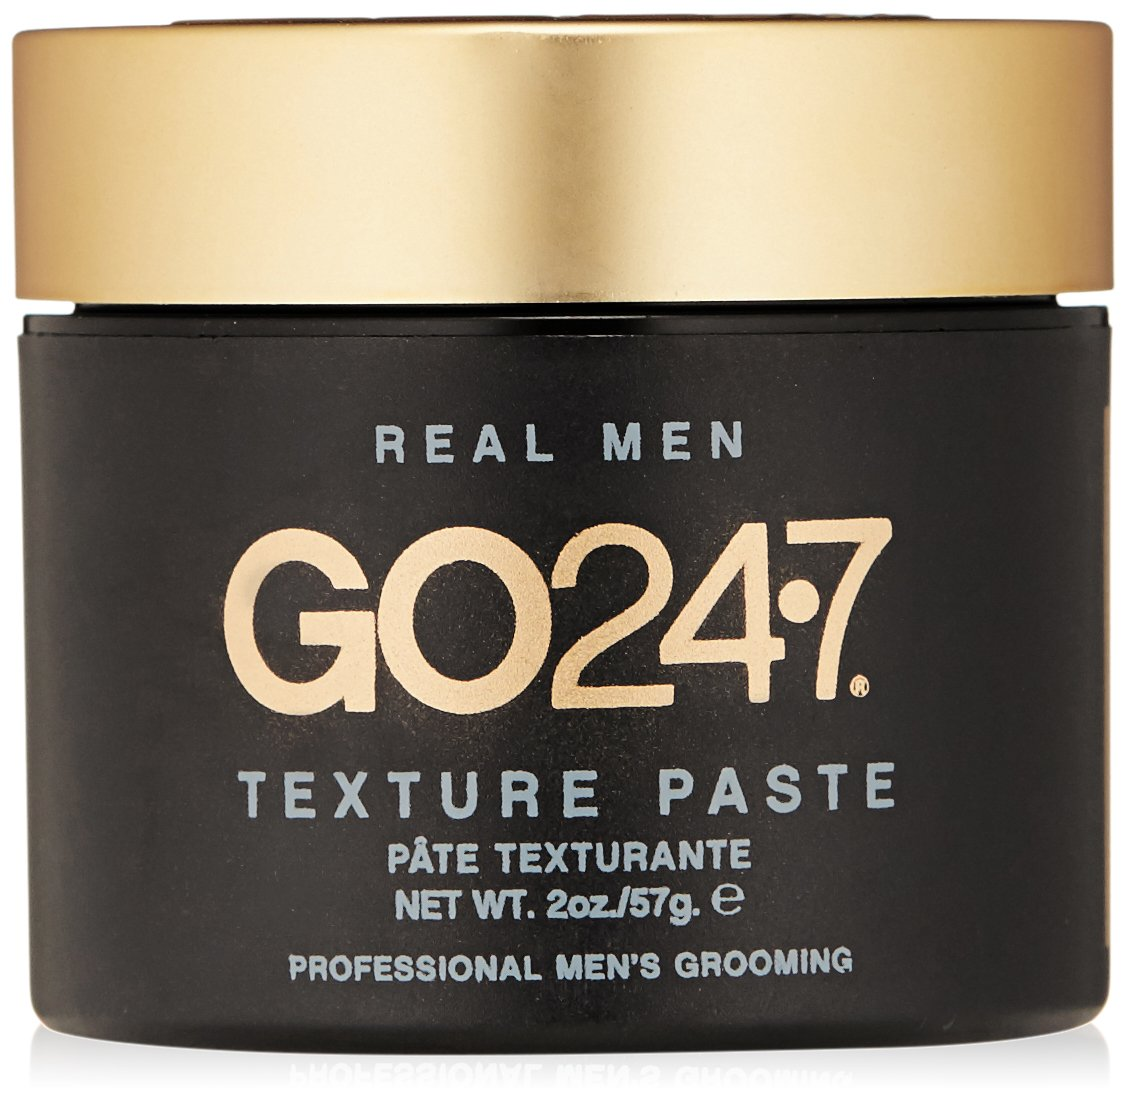 Real Men Texture Paste by GO247 for Men - 2 oz Paste I34284